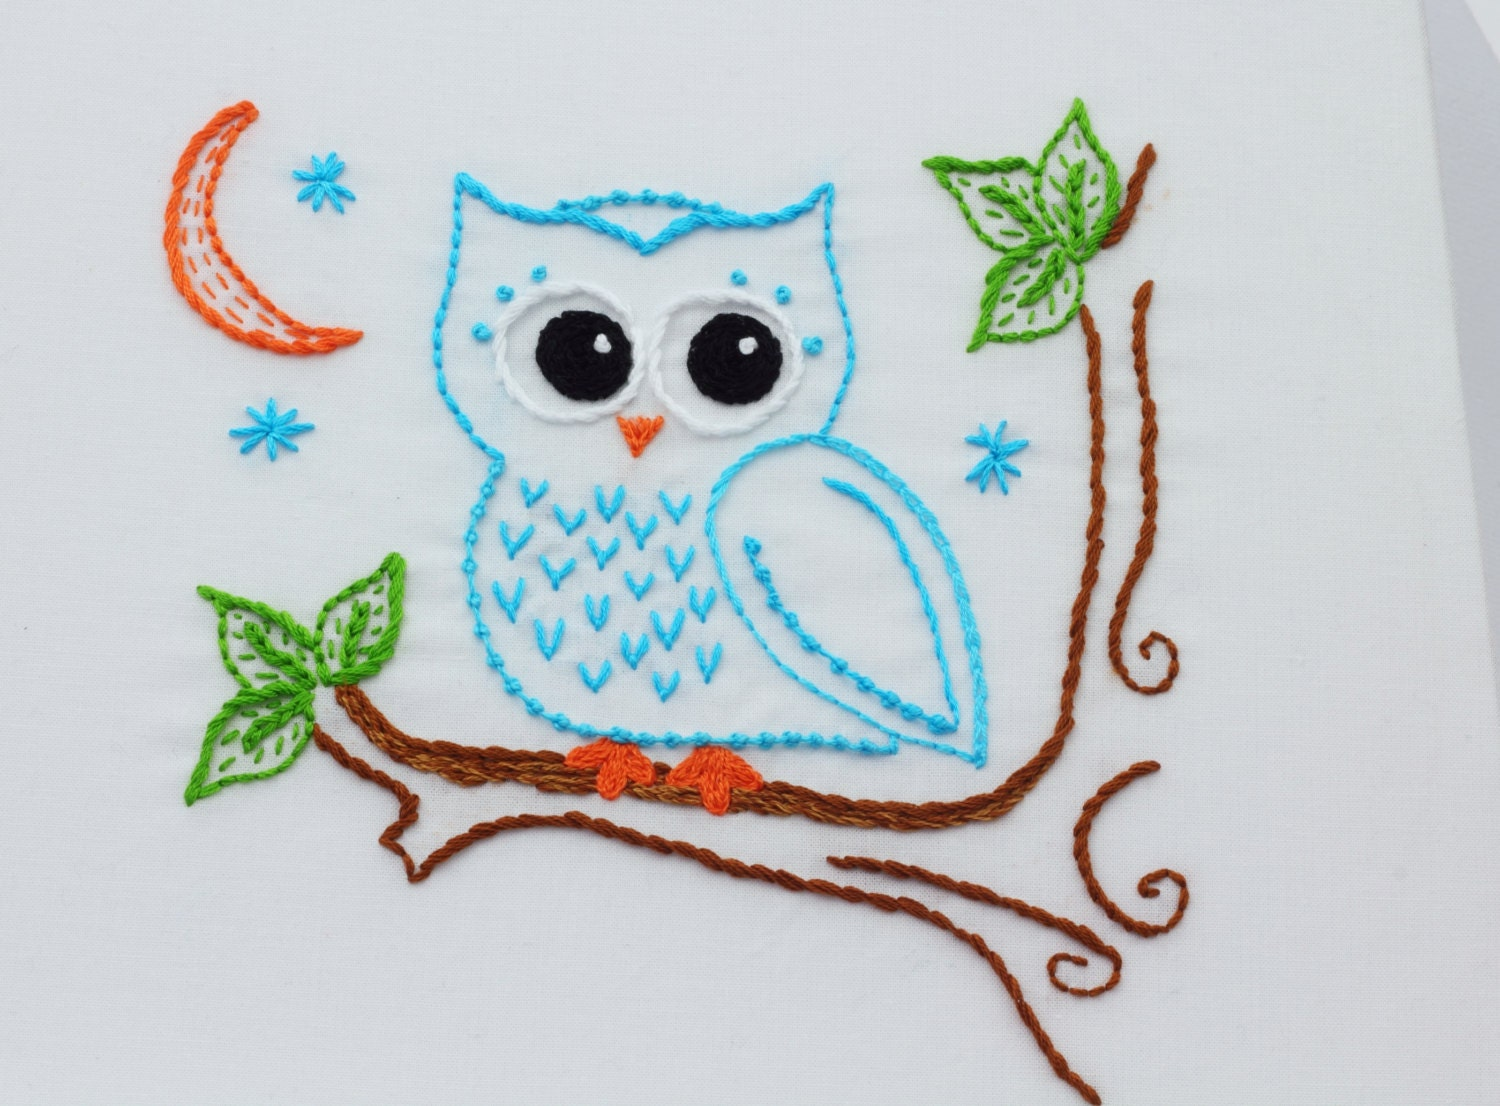 Simple animal embroidery patterns imgkid the